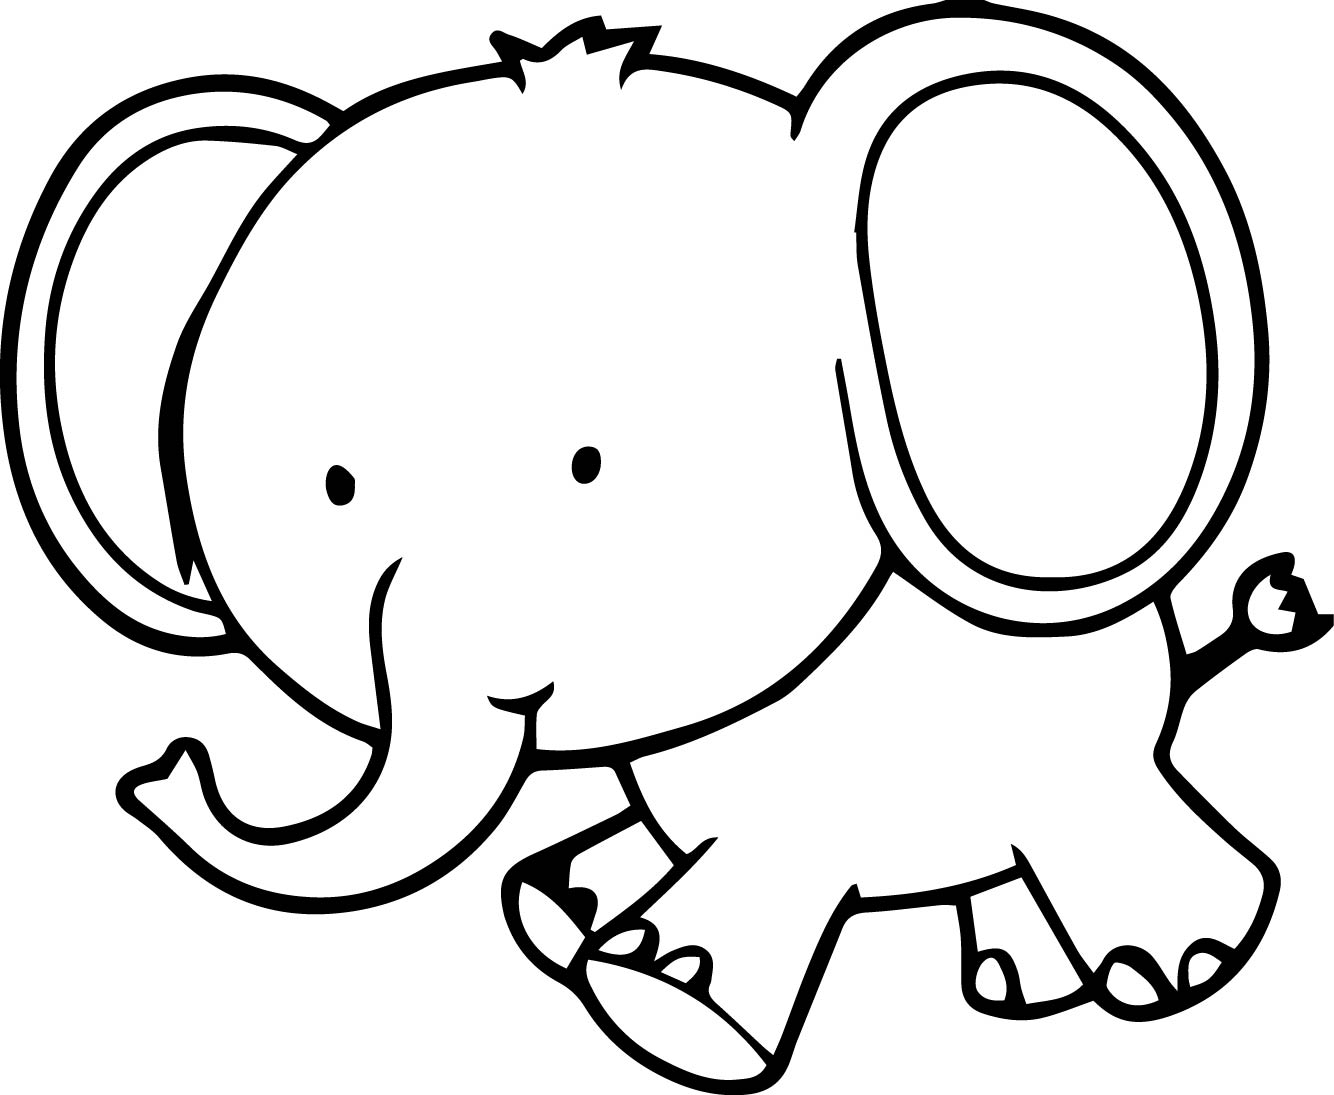 colouring picture of elephant elephant coloring pages free download on clipartmag of elephant picture colouring